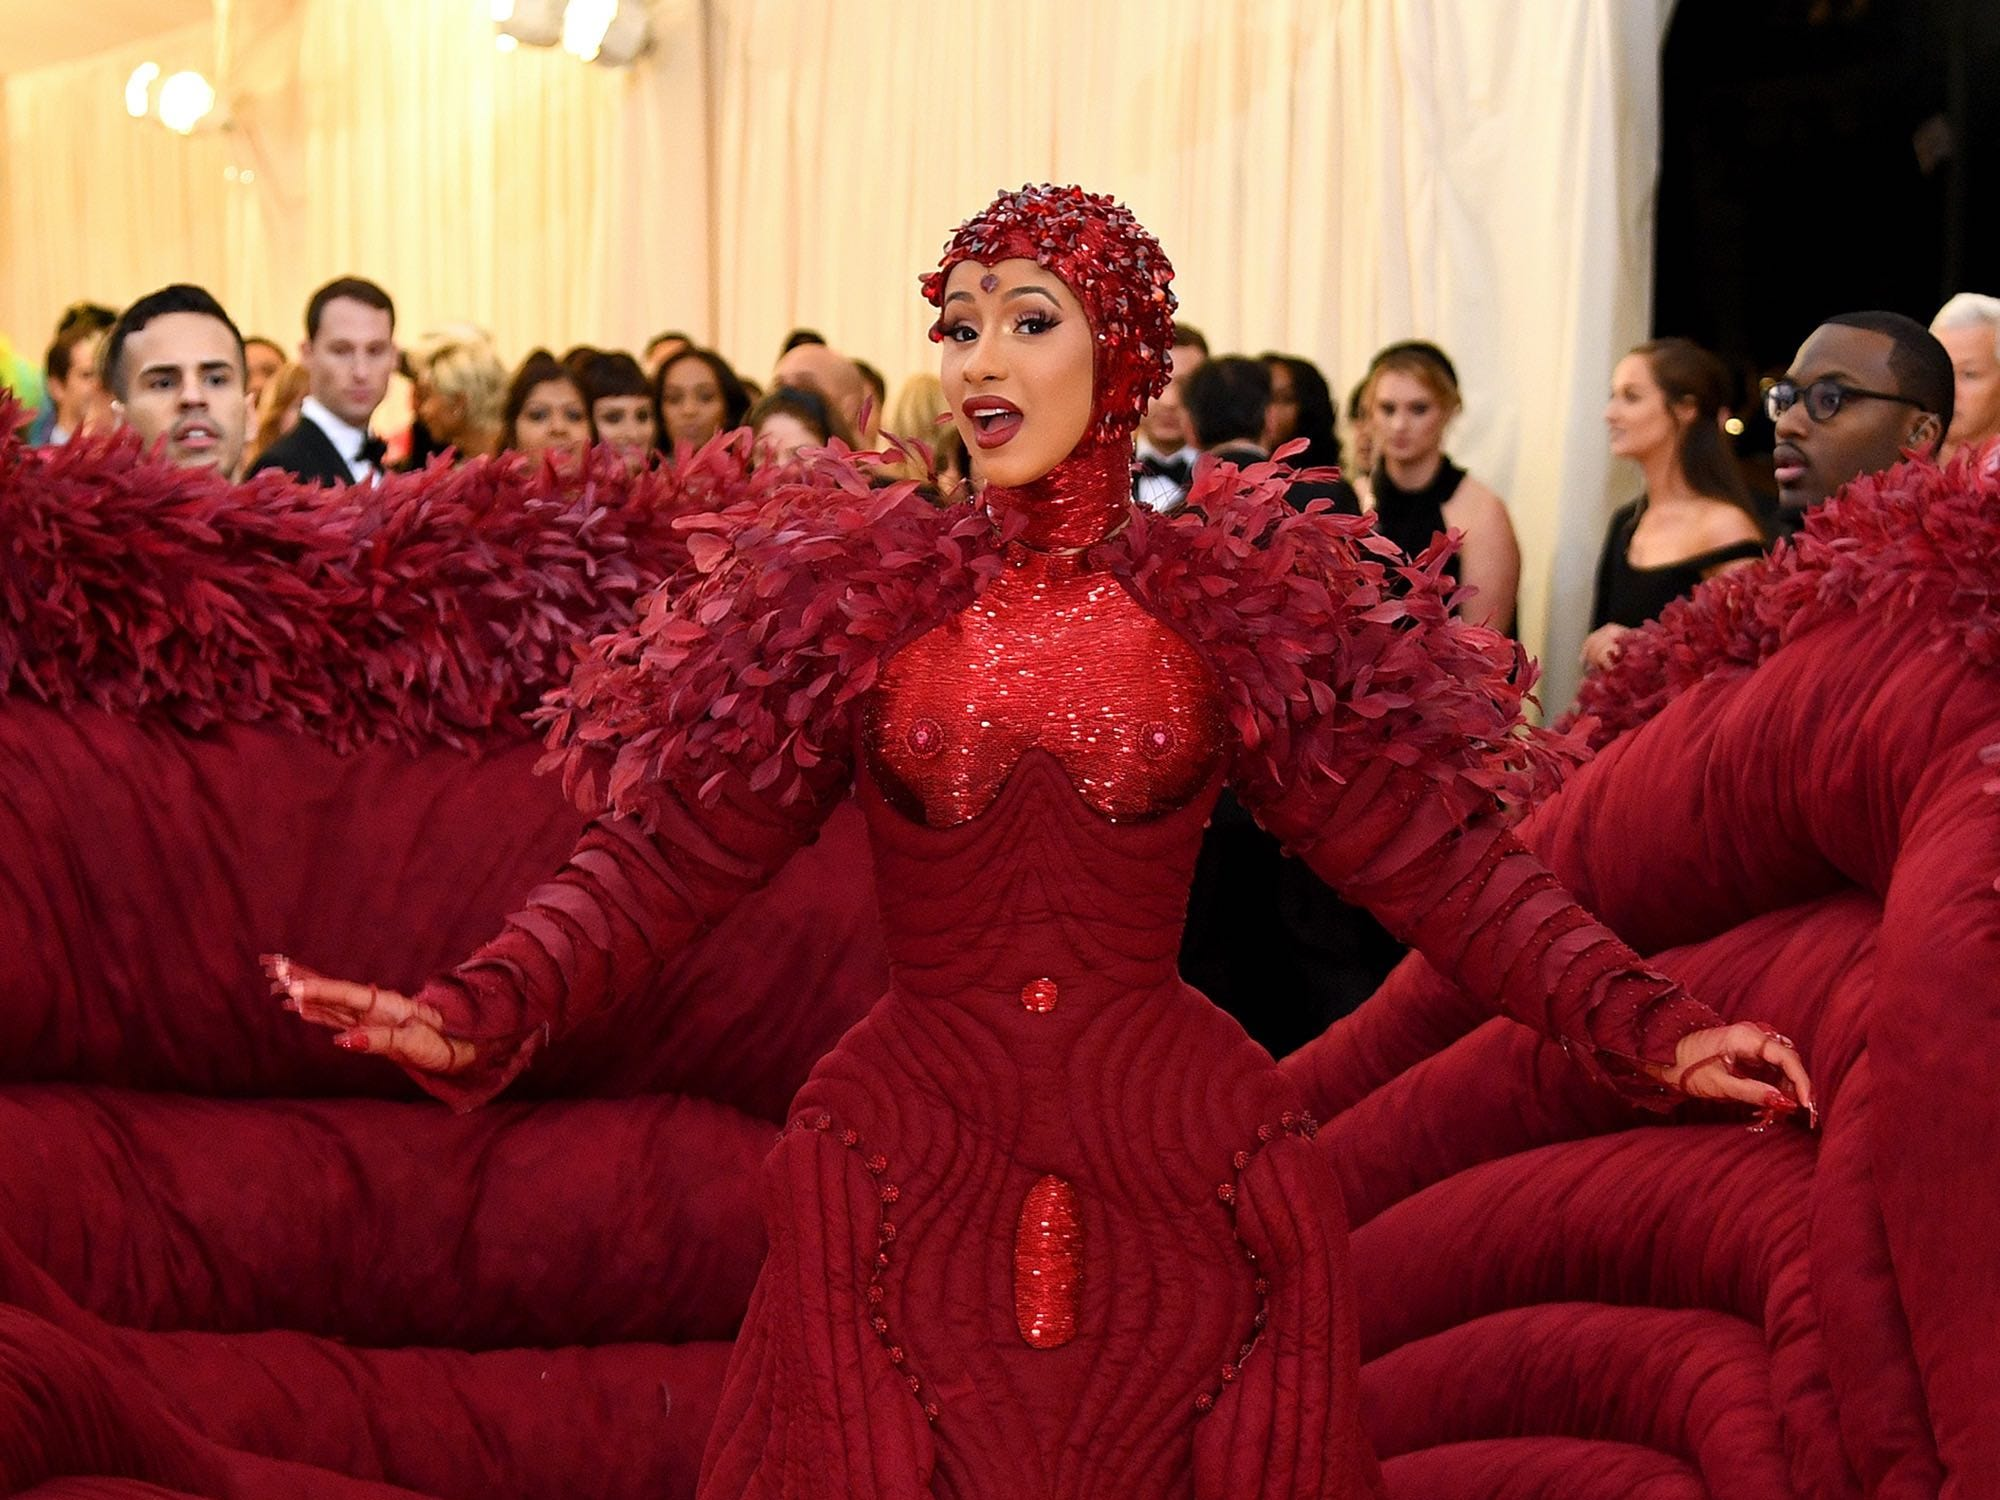 What Is Camp Fashion? 2019 Met Gala Theme, Explained